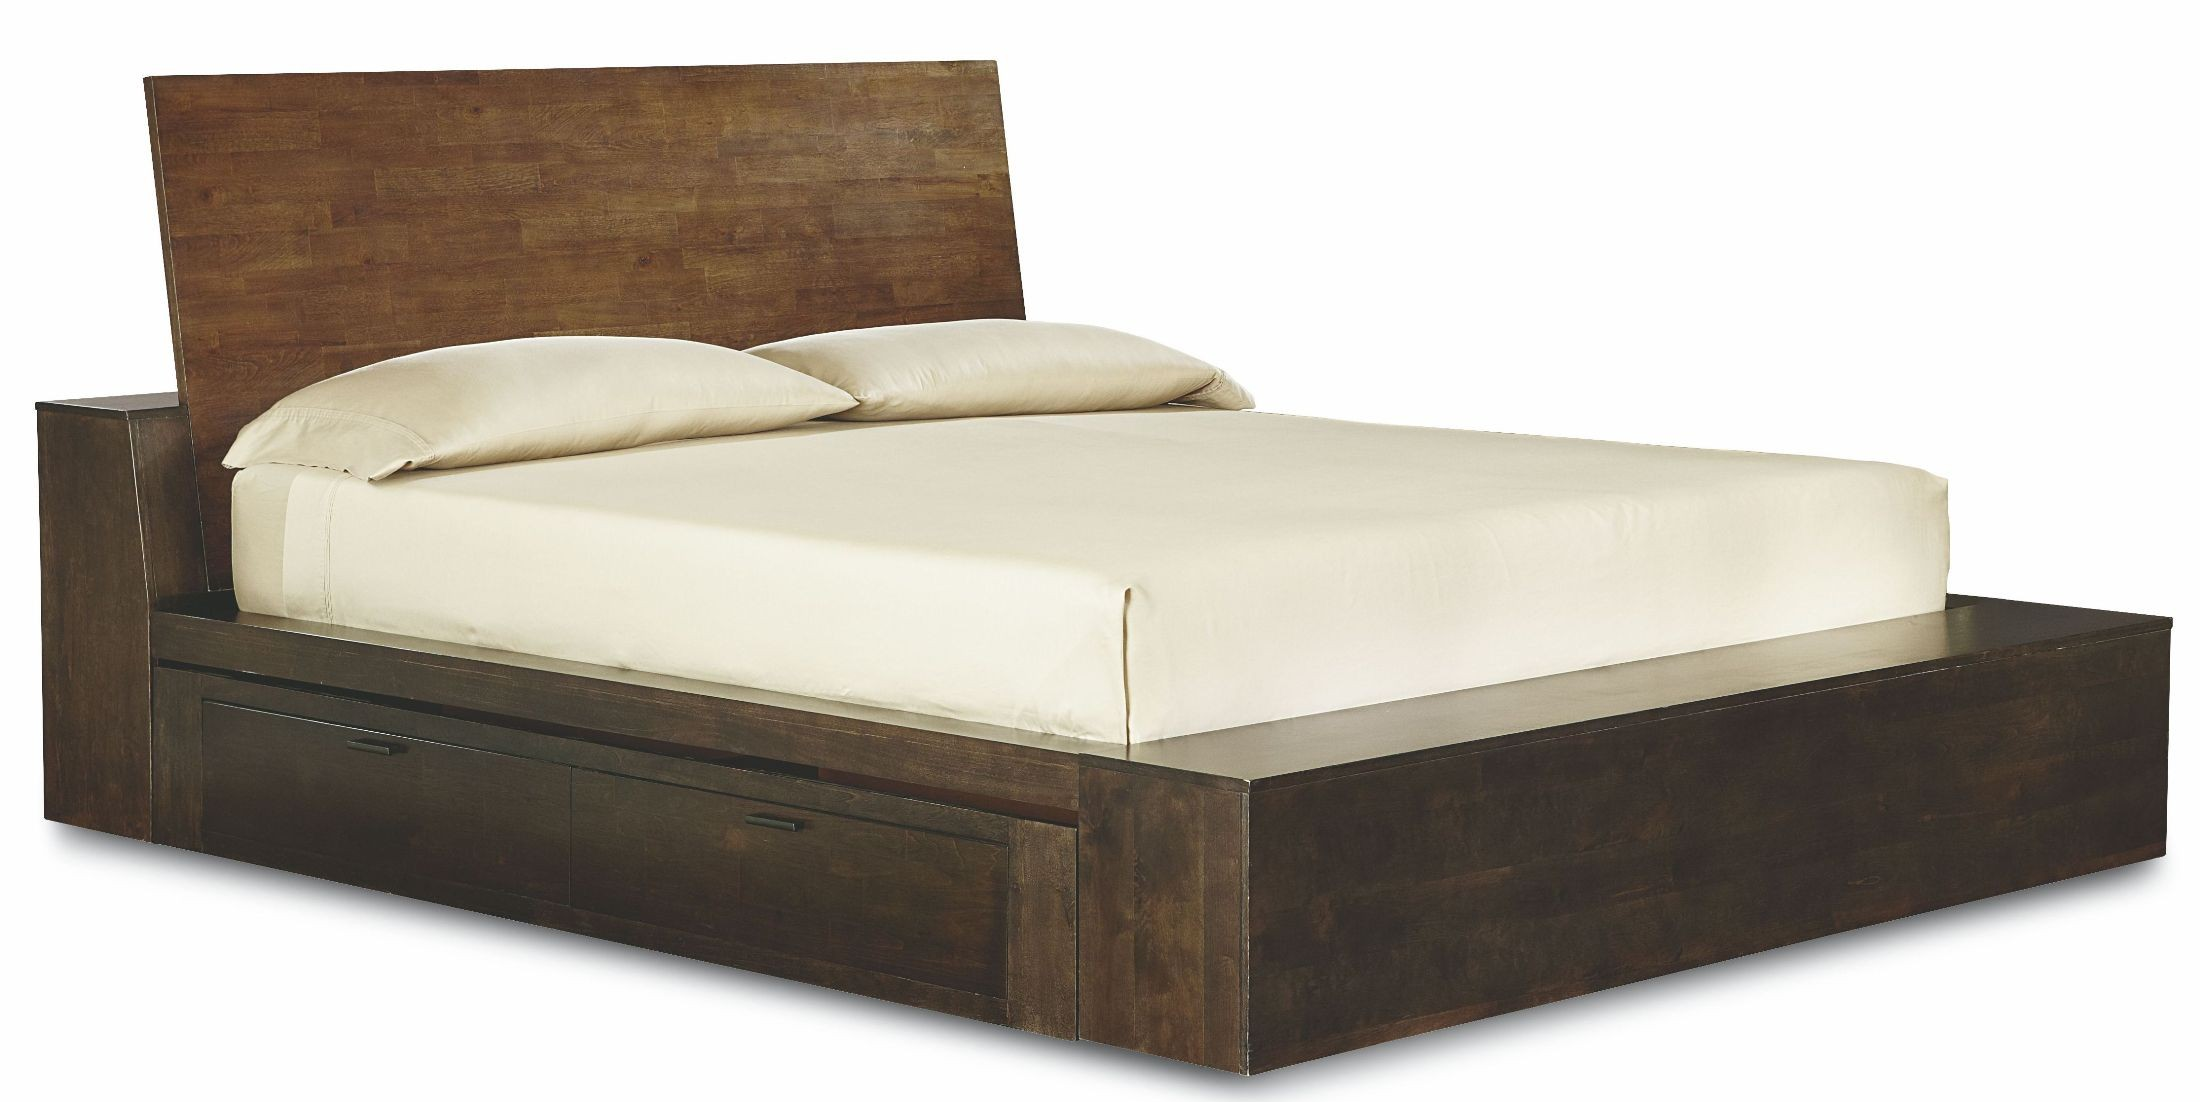 King White Platform Bed With Storage